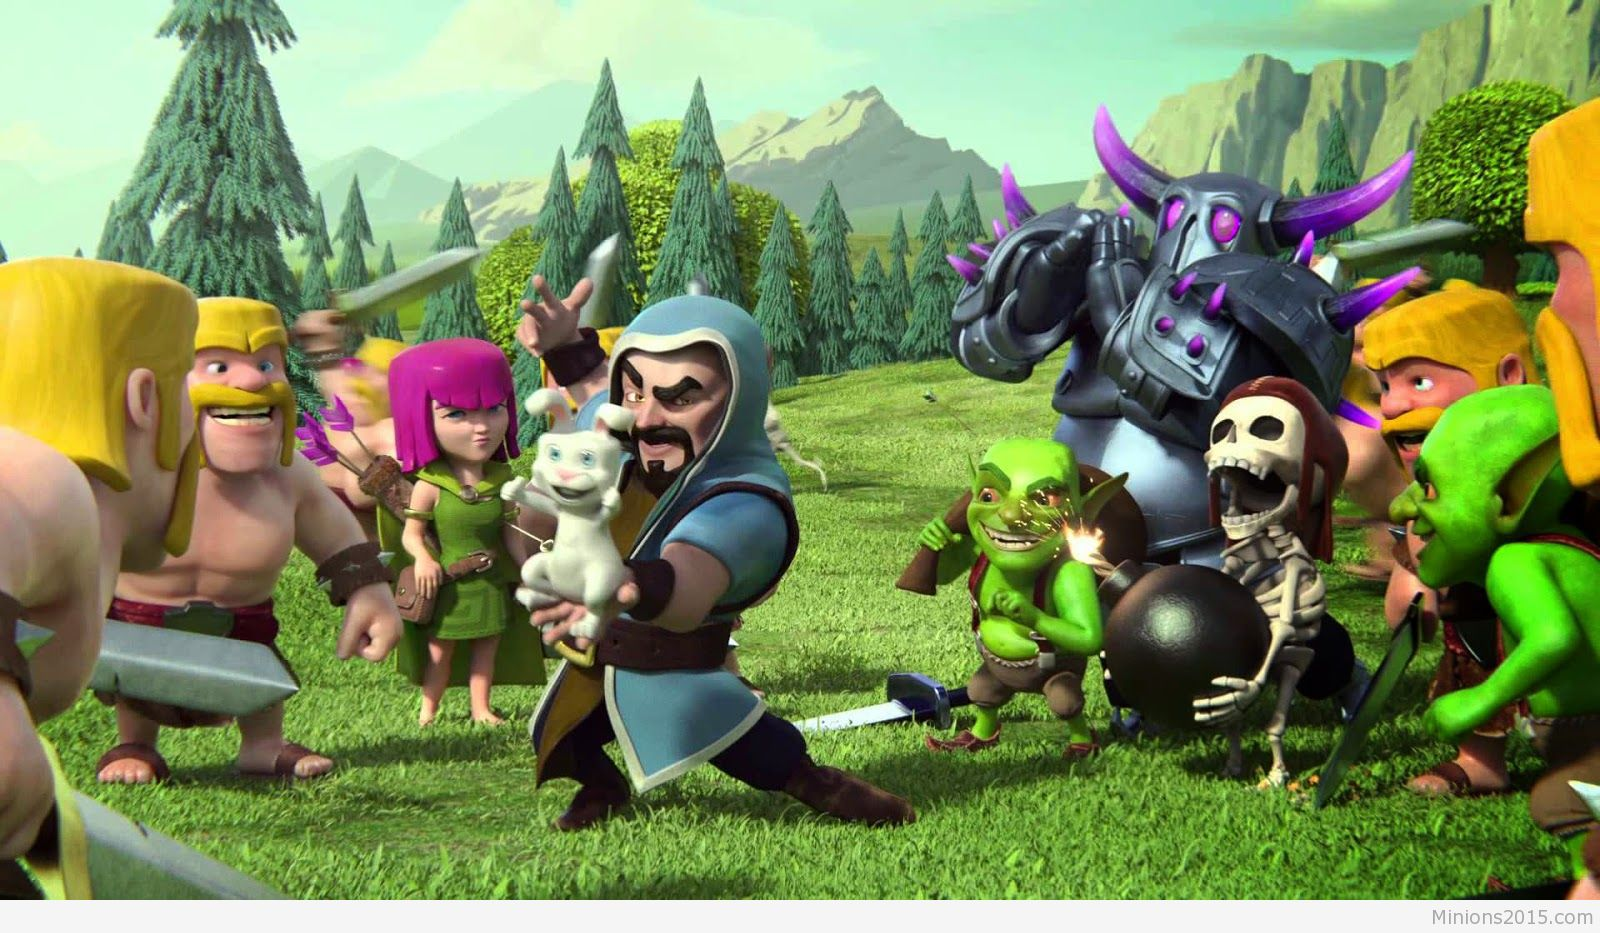 Clash Of Clans Wallpapers Images Photos Pictures Backgrounds 1600x933